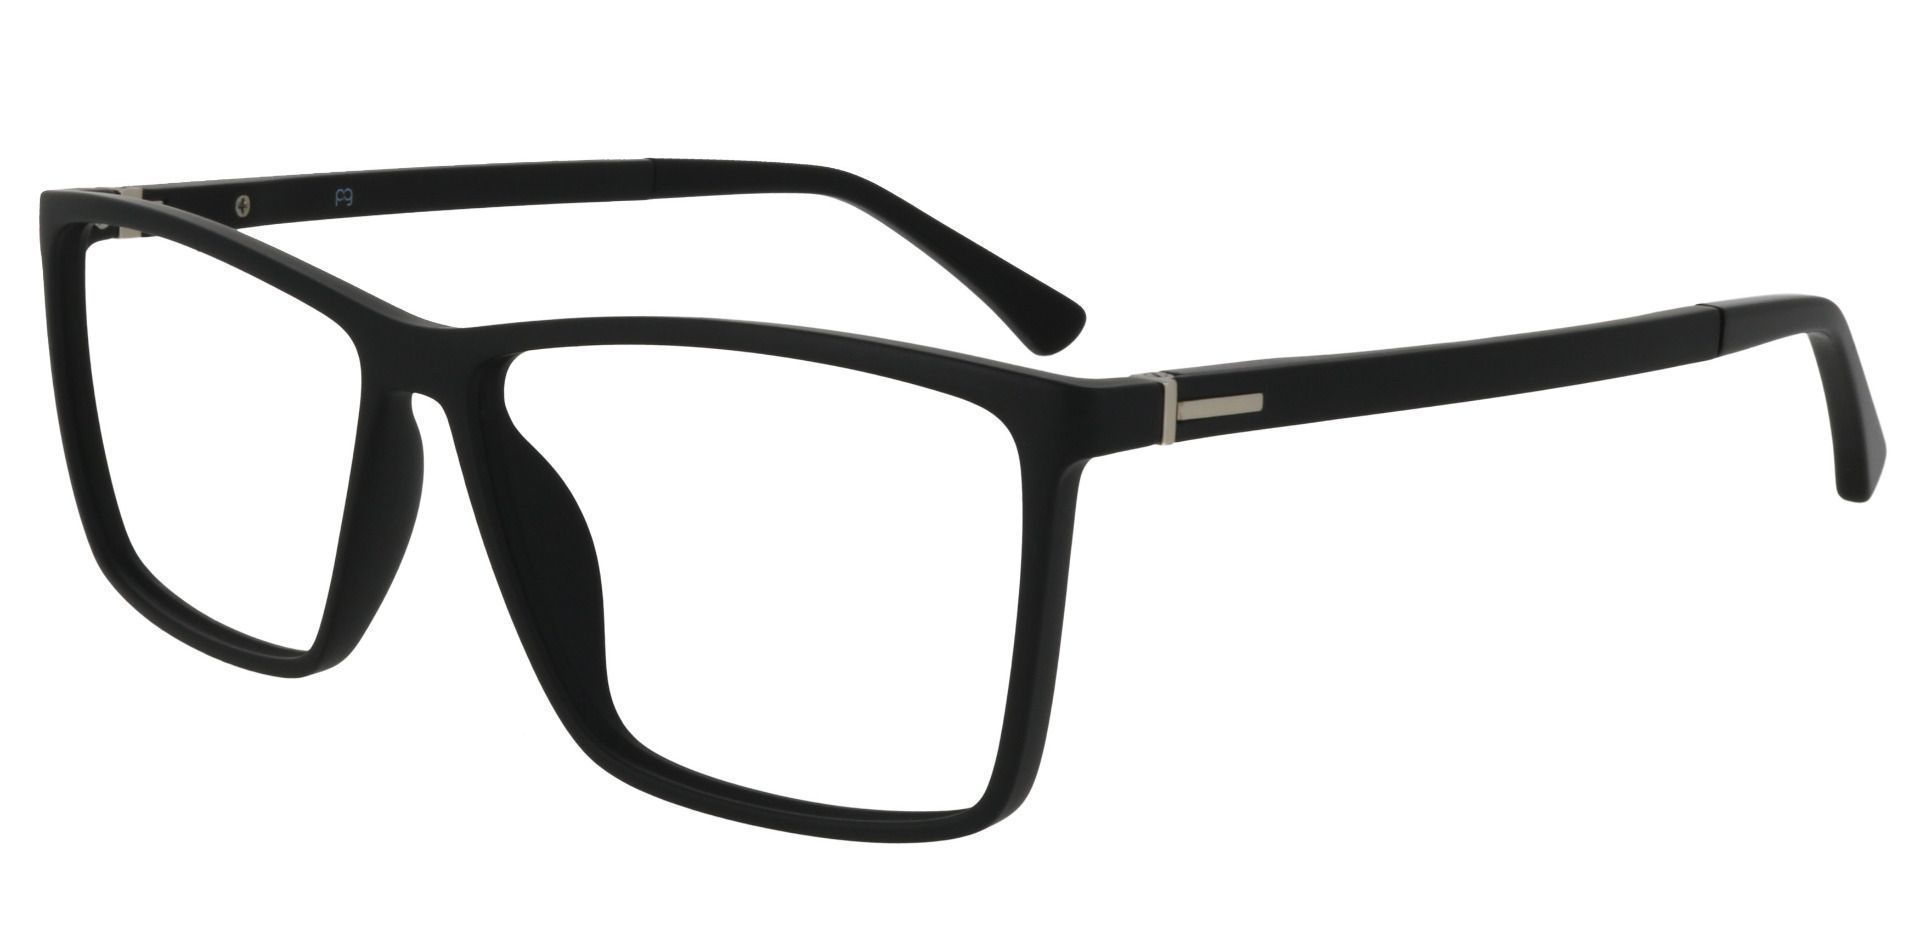 Louie Square Prescription Glasses - Matte Black